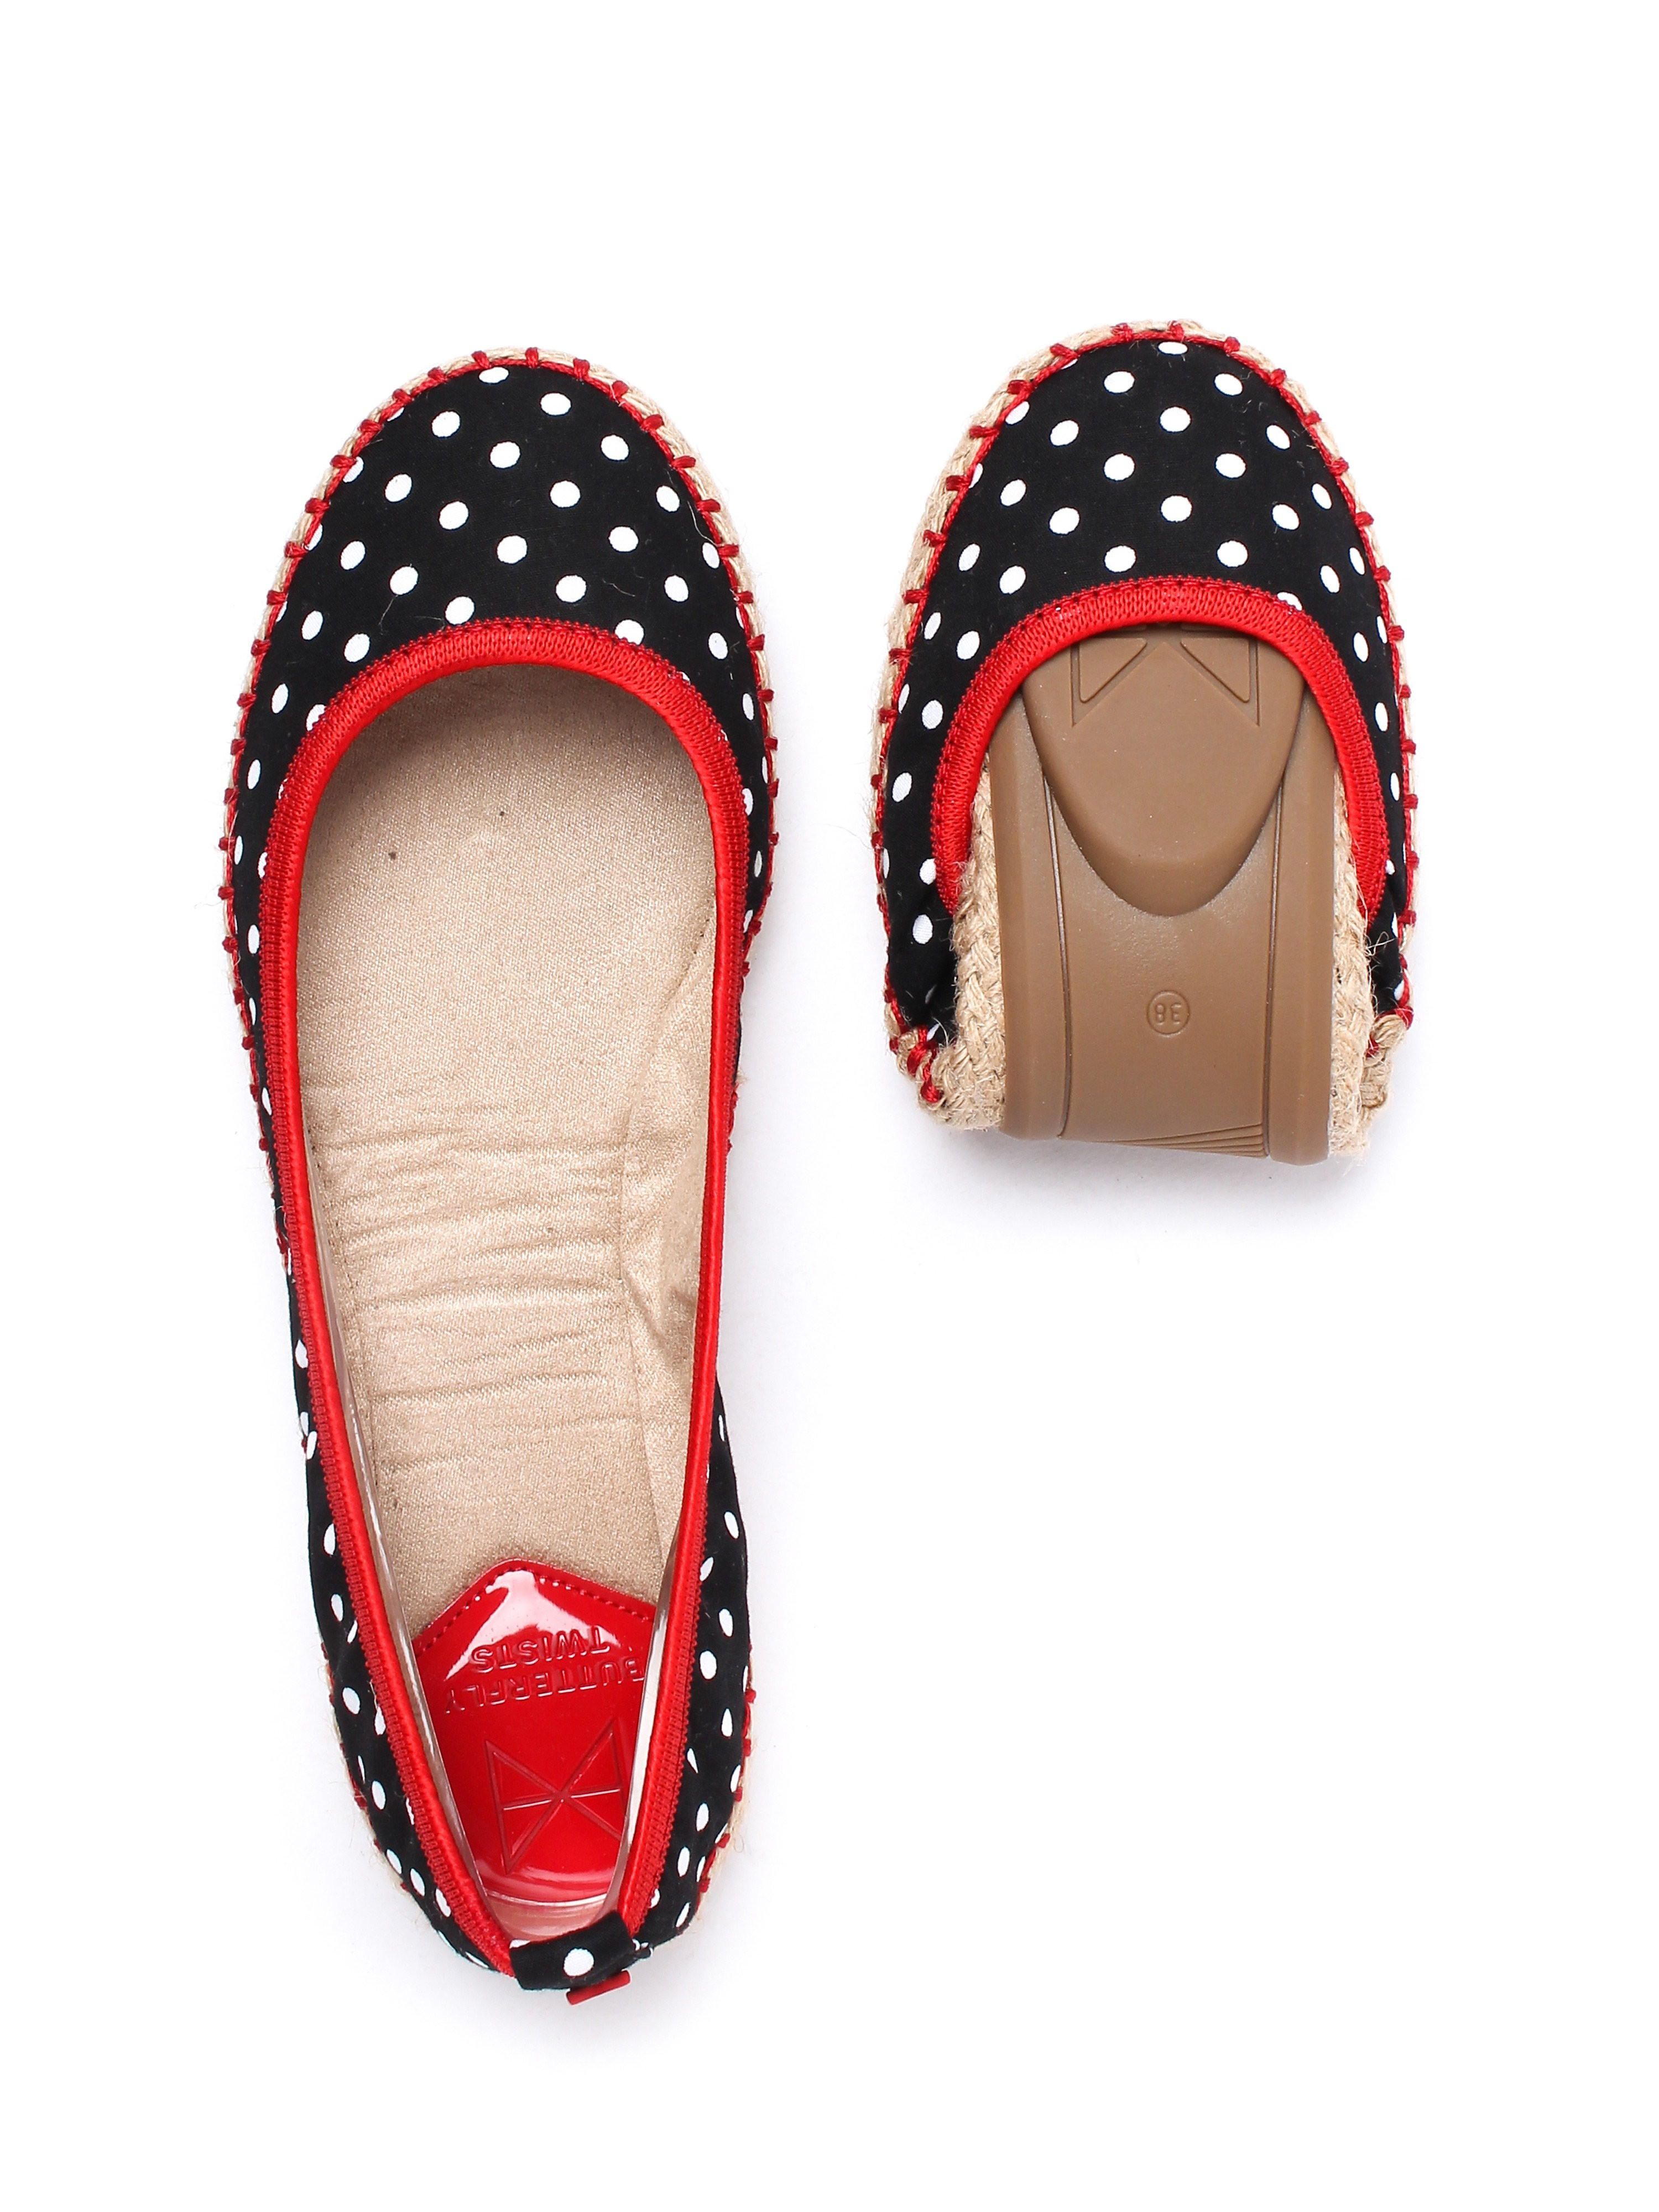 Butterfly Twists Women's Gigi Polka Dot Foldable Ballerina Pumps - Black & White